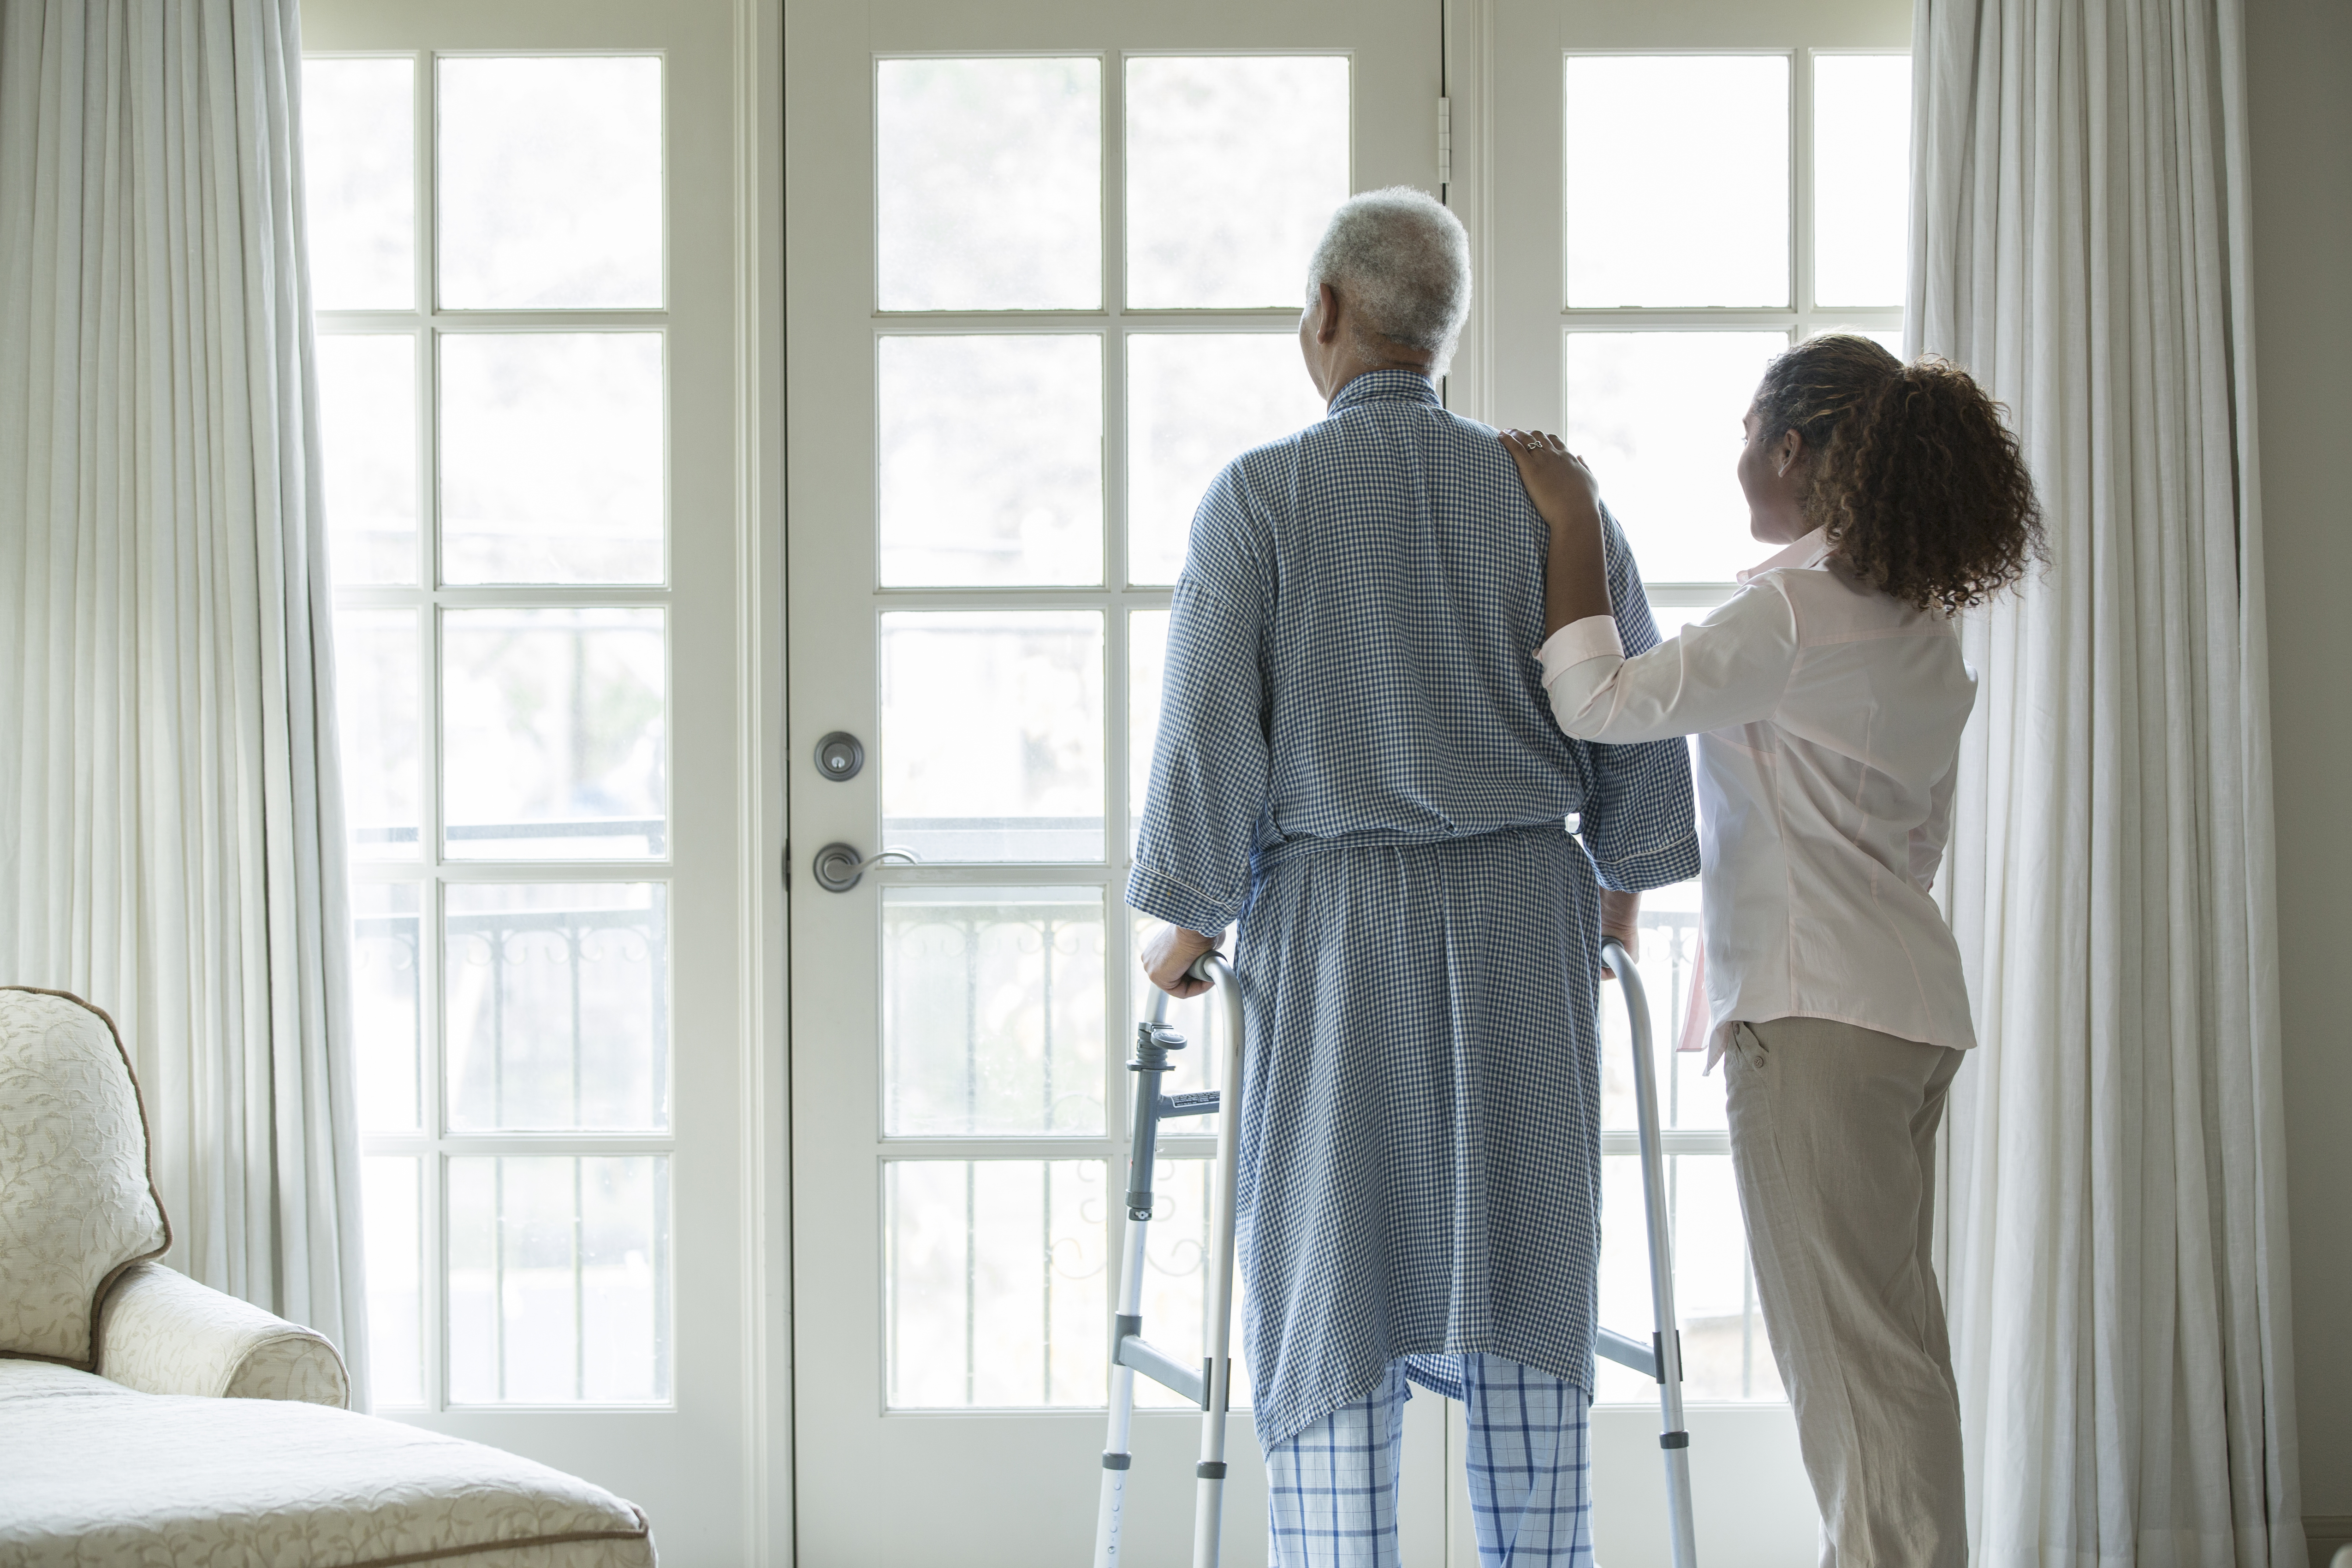 Washington State Pioneers New Solution to Address Long-Term Care Needs